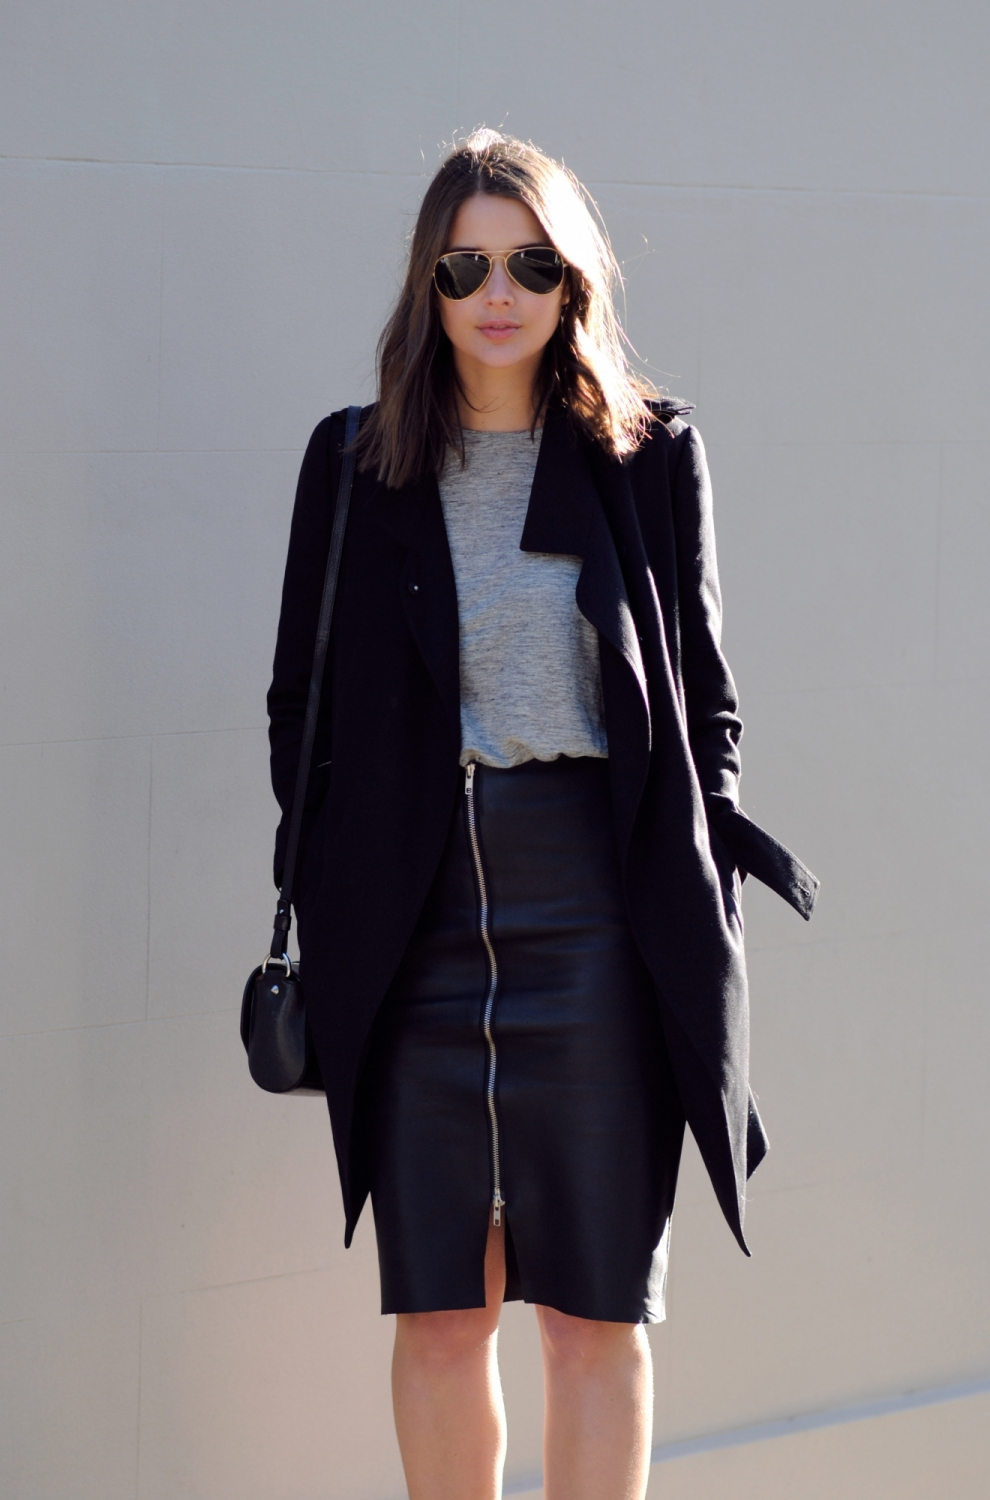 harper and harley_coat_leather skirt_winter outfit_07